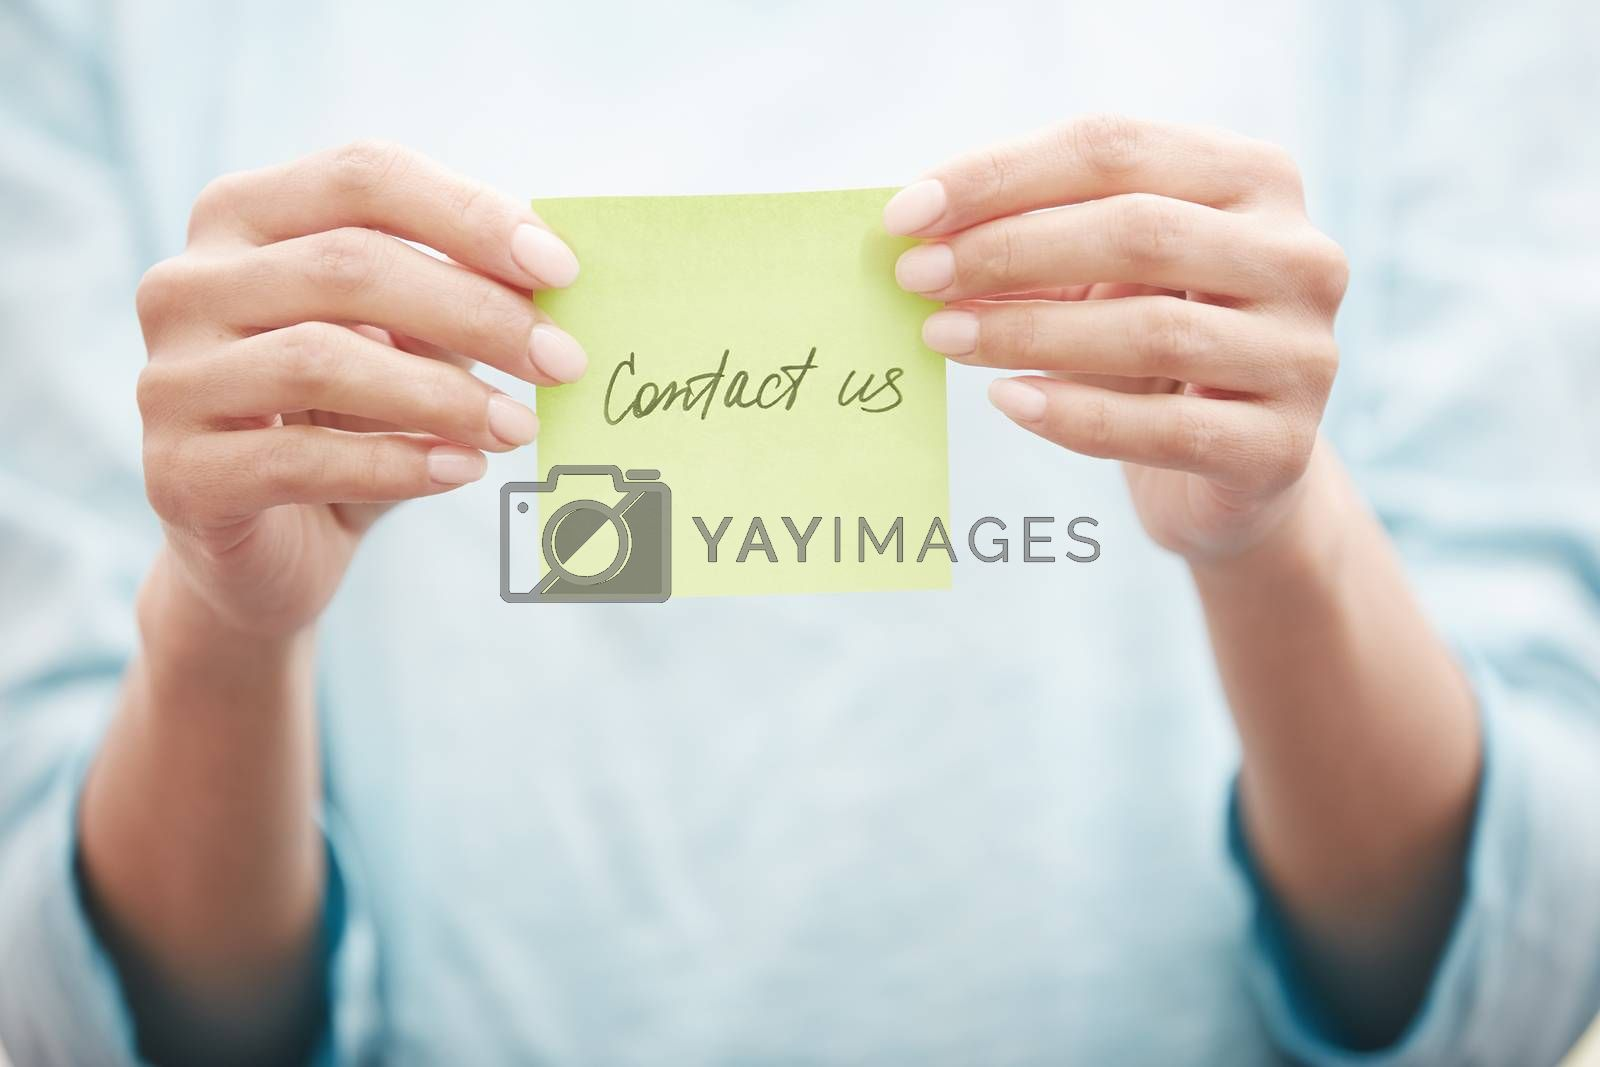 Yoga instructor holding sticky note with Contact us text